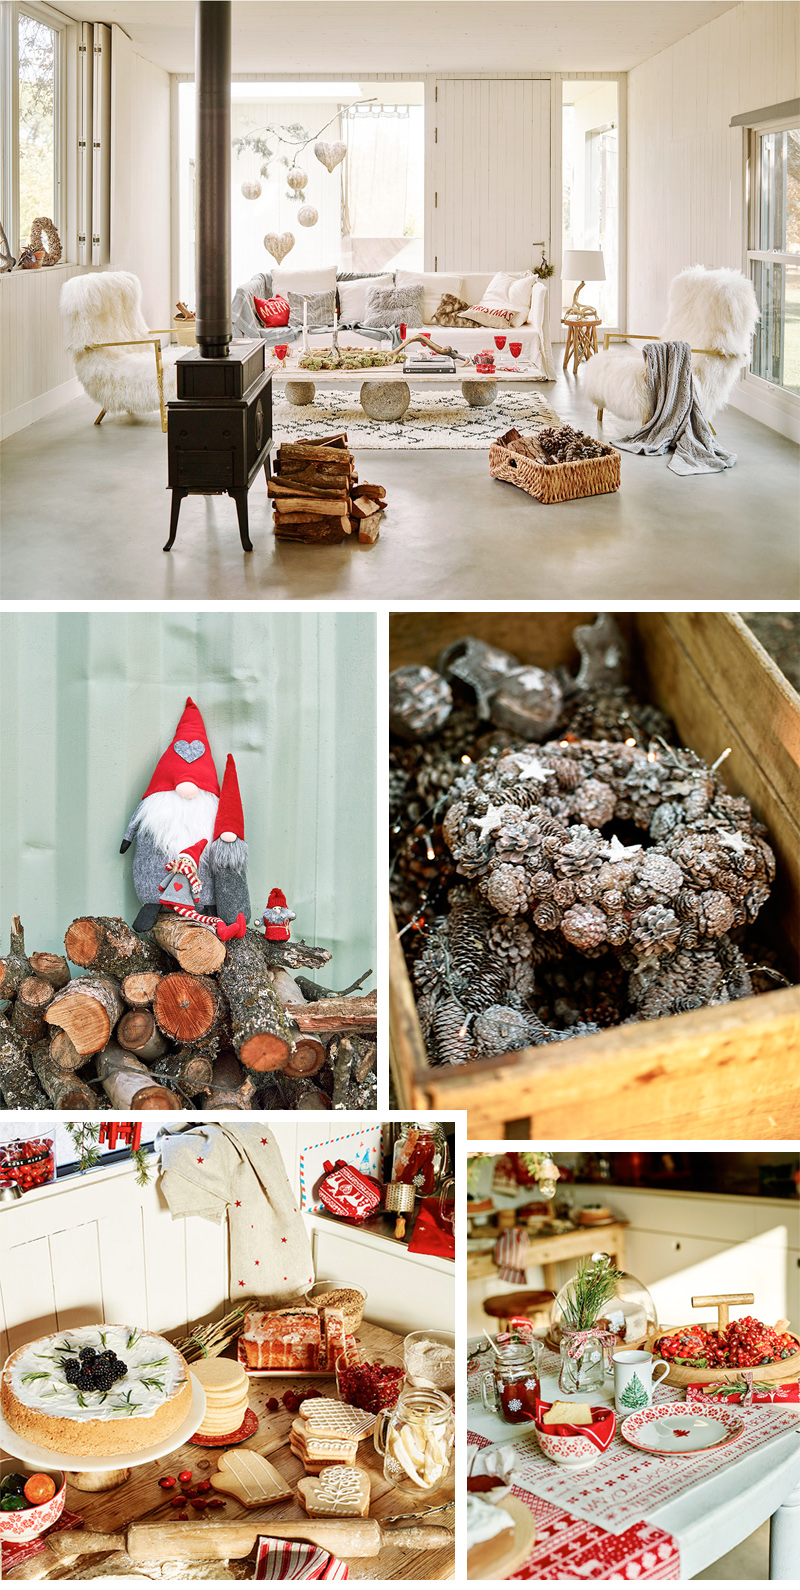 Zara_Home_Christmas